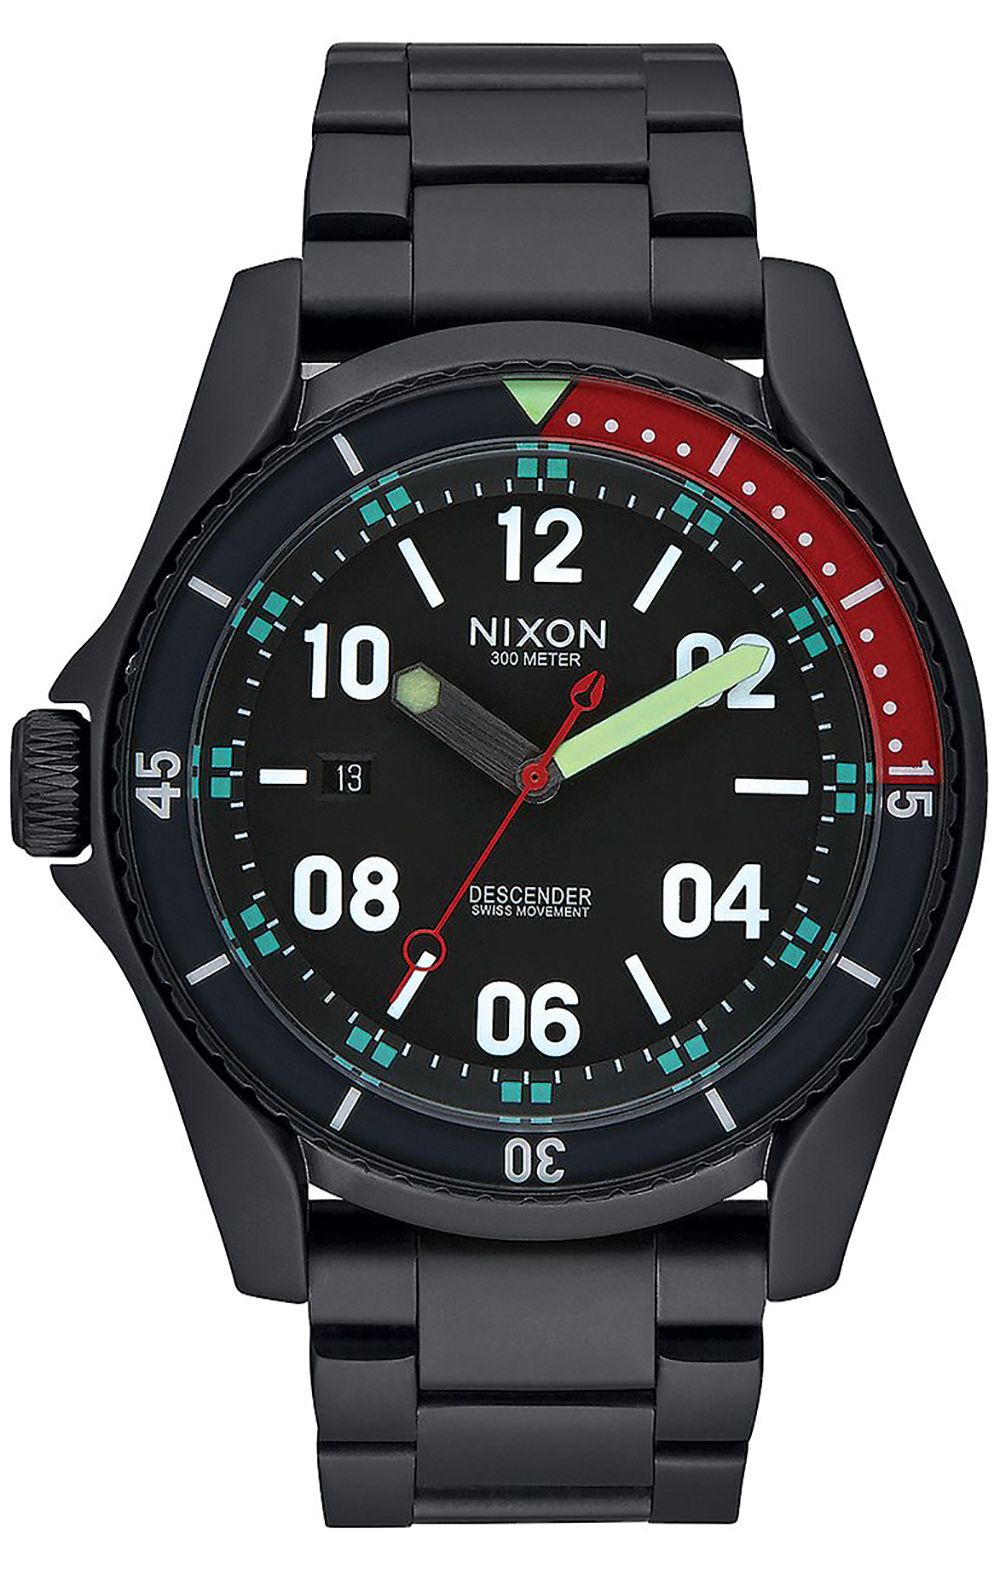 Relogio Nixon DESCENDER All Black/Multi